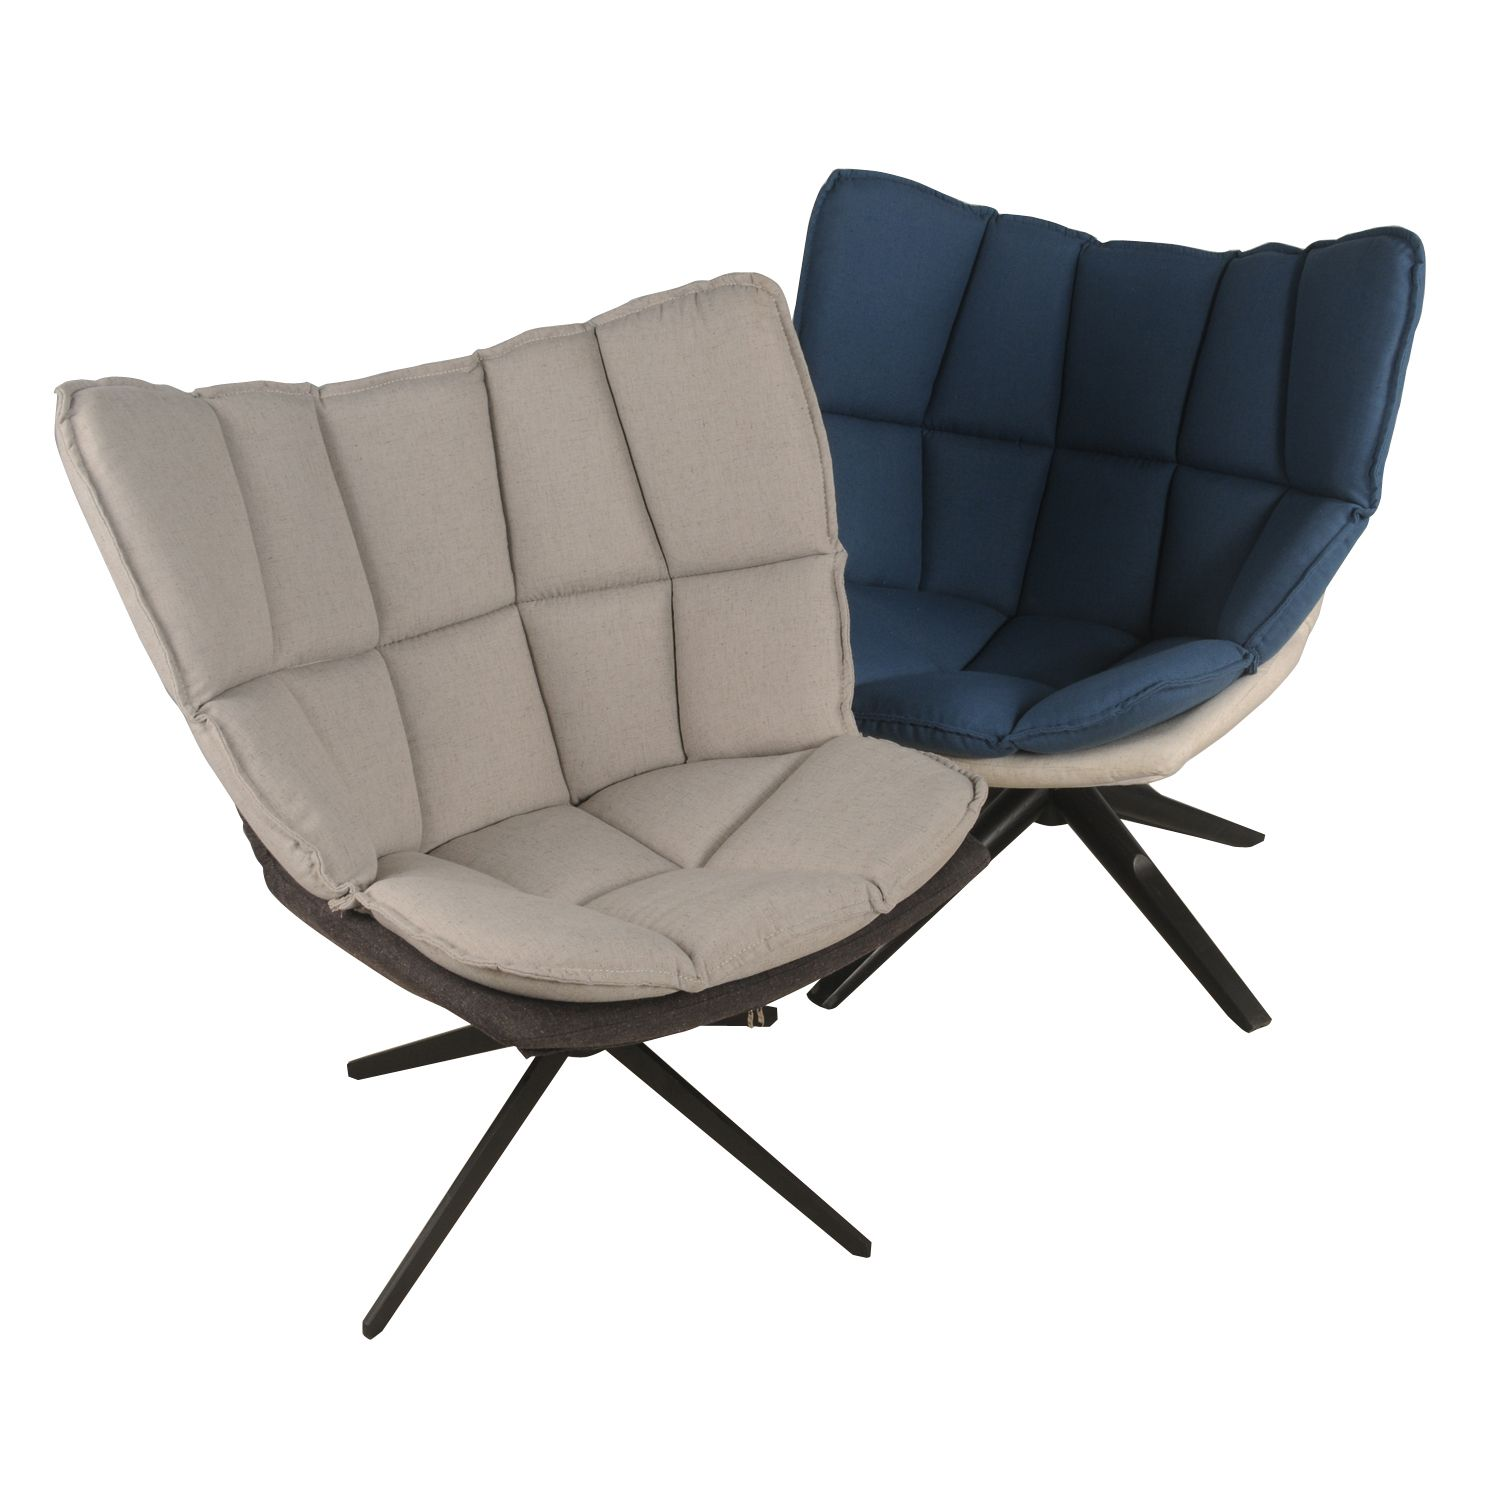 Dillon Fabric Swivel Chair Black Base In Argos And Bistre Or Naval